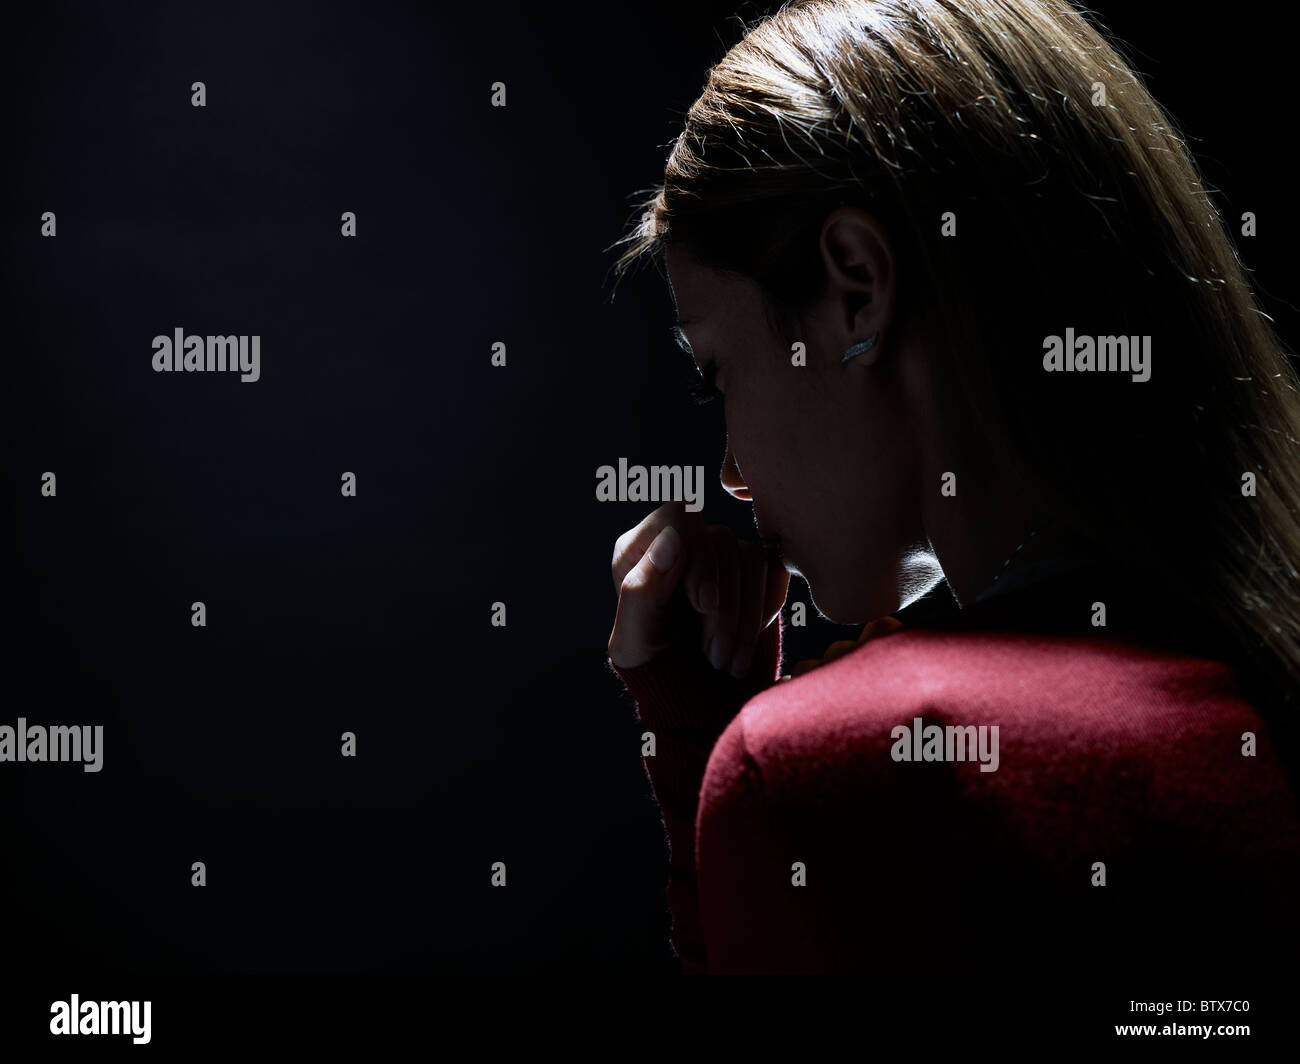 pensive woman on black background, representing the concept of anonymity - Stock Image